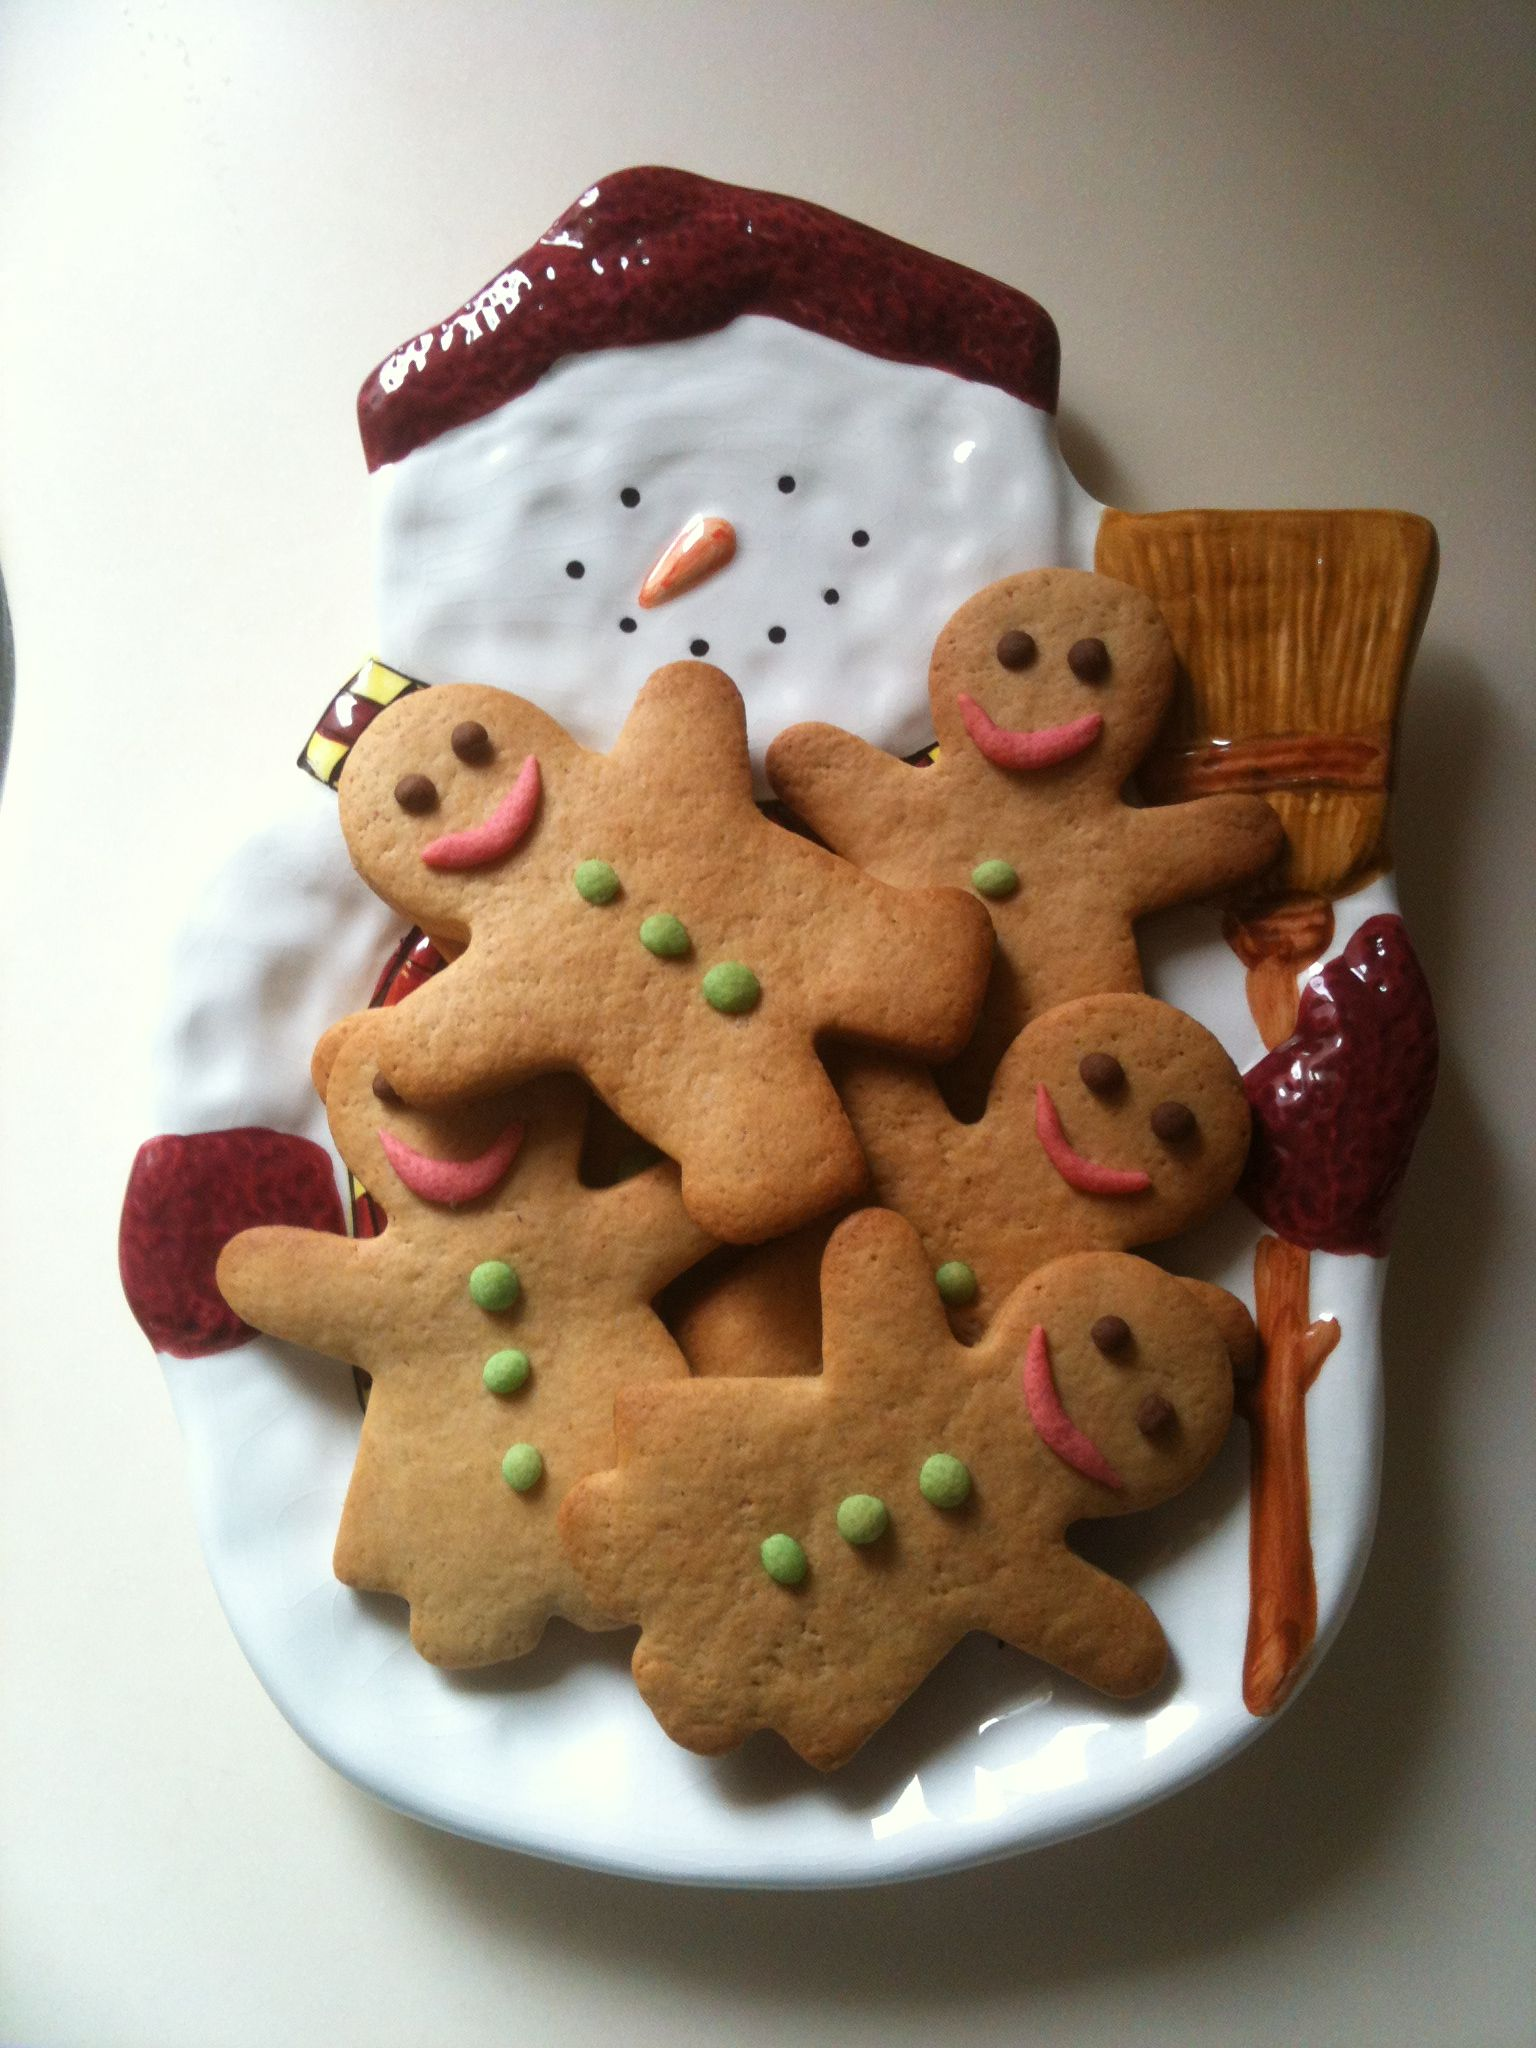 No Icing Gingerbread Man Cookies